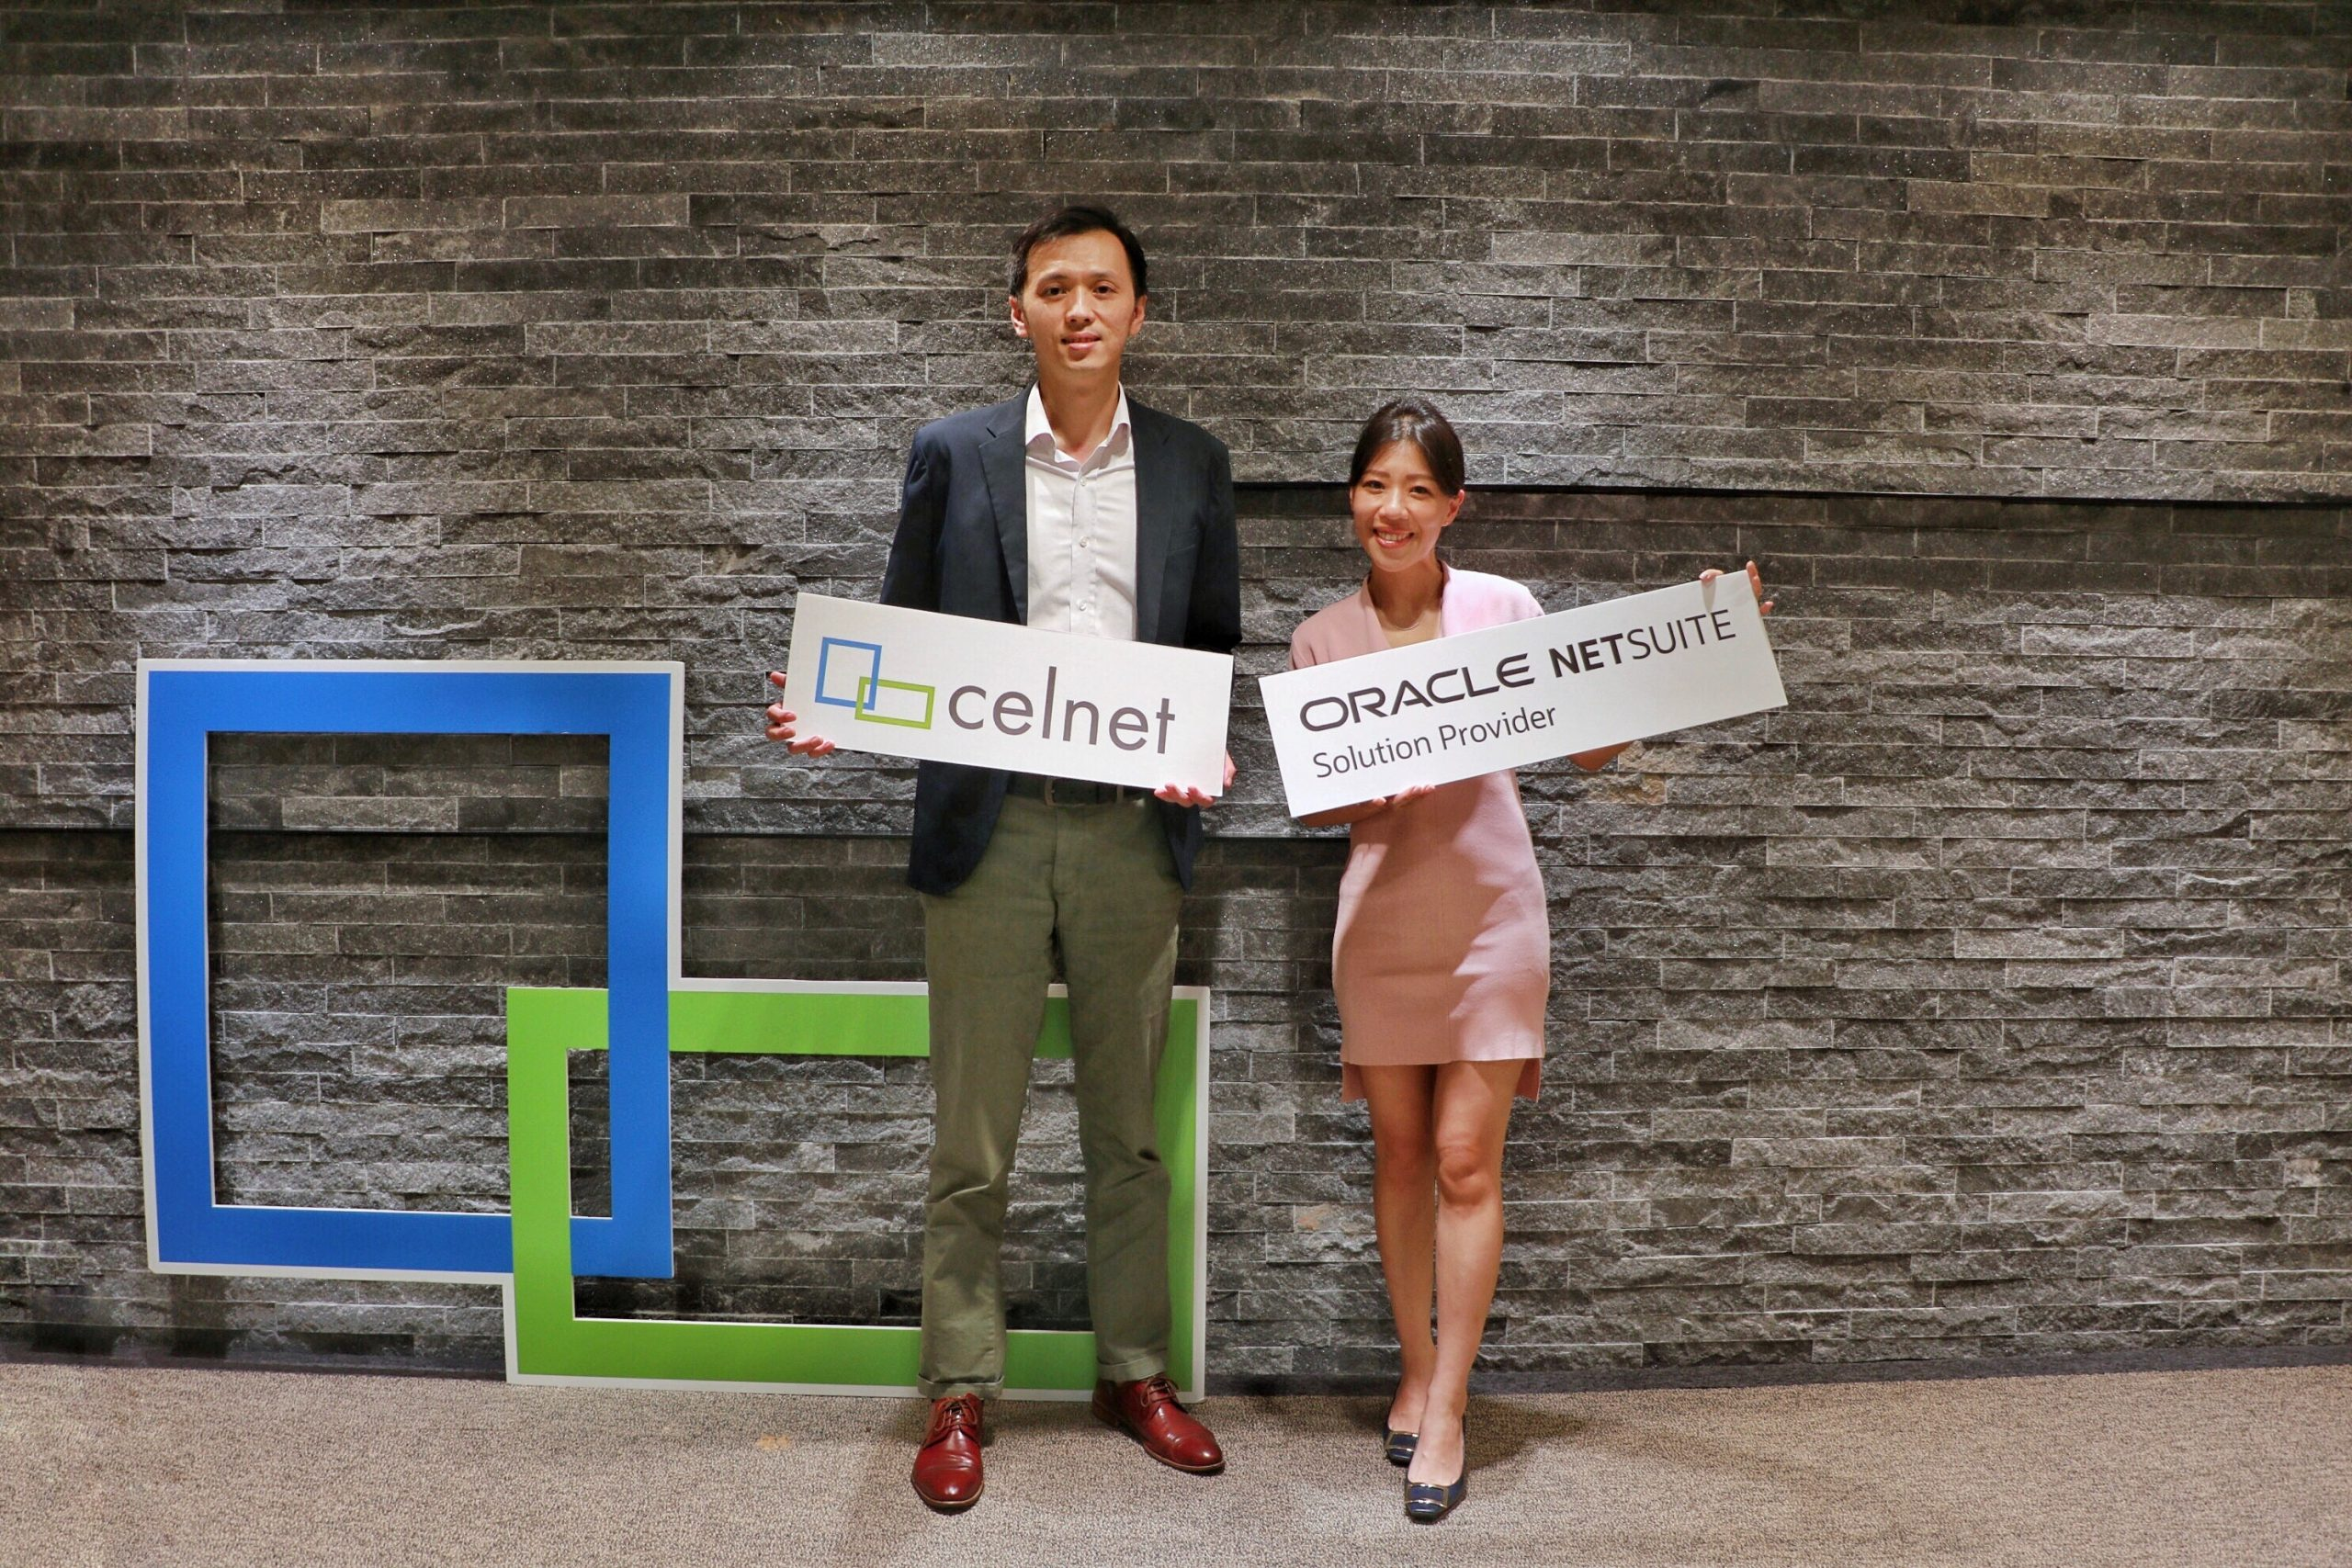 Celnet and NetSuite cooperation